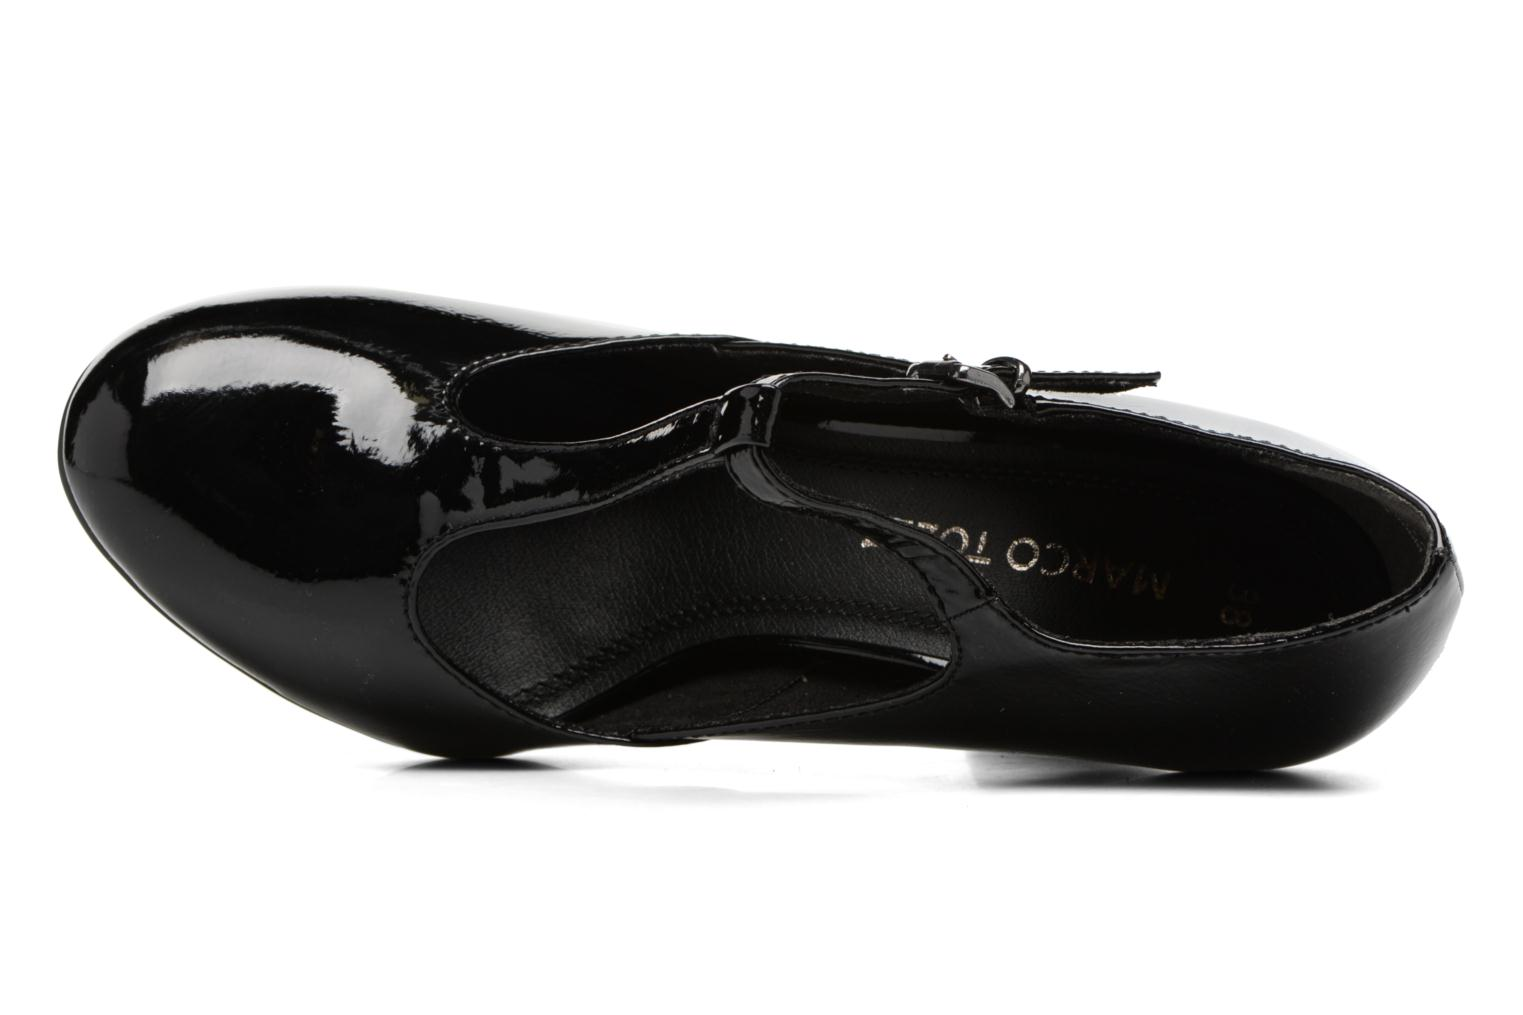 Bing 2 Black Patent